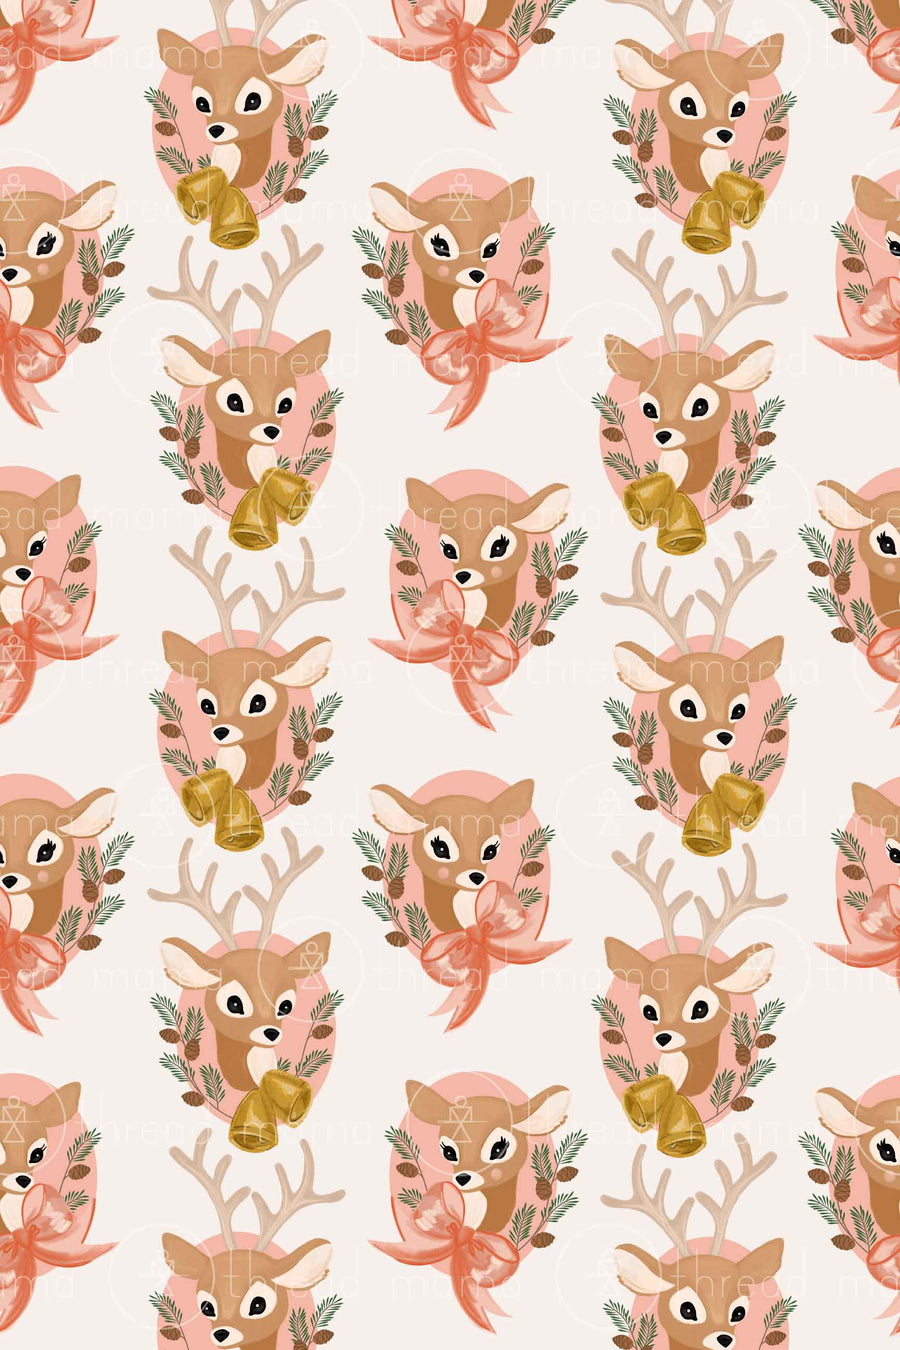 Background Pattern #23 (Printable Poster)